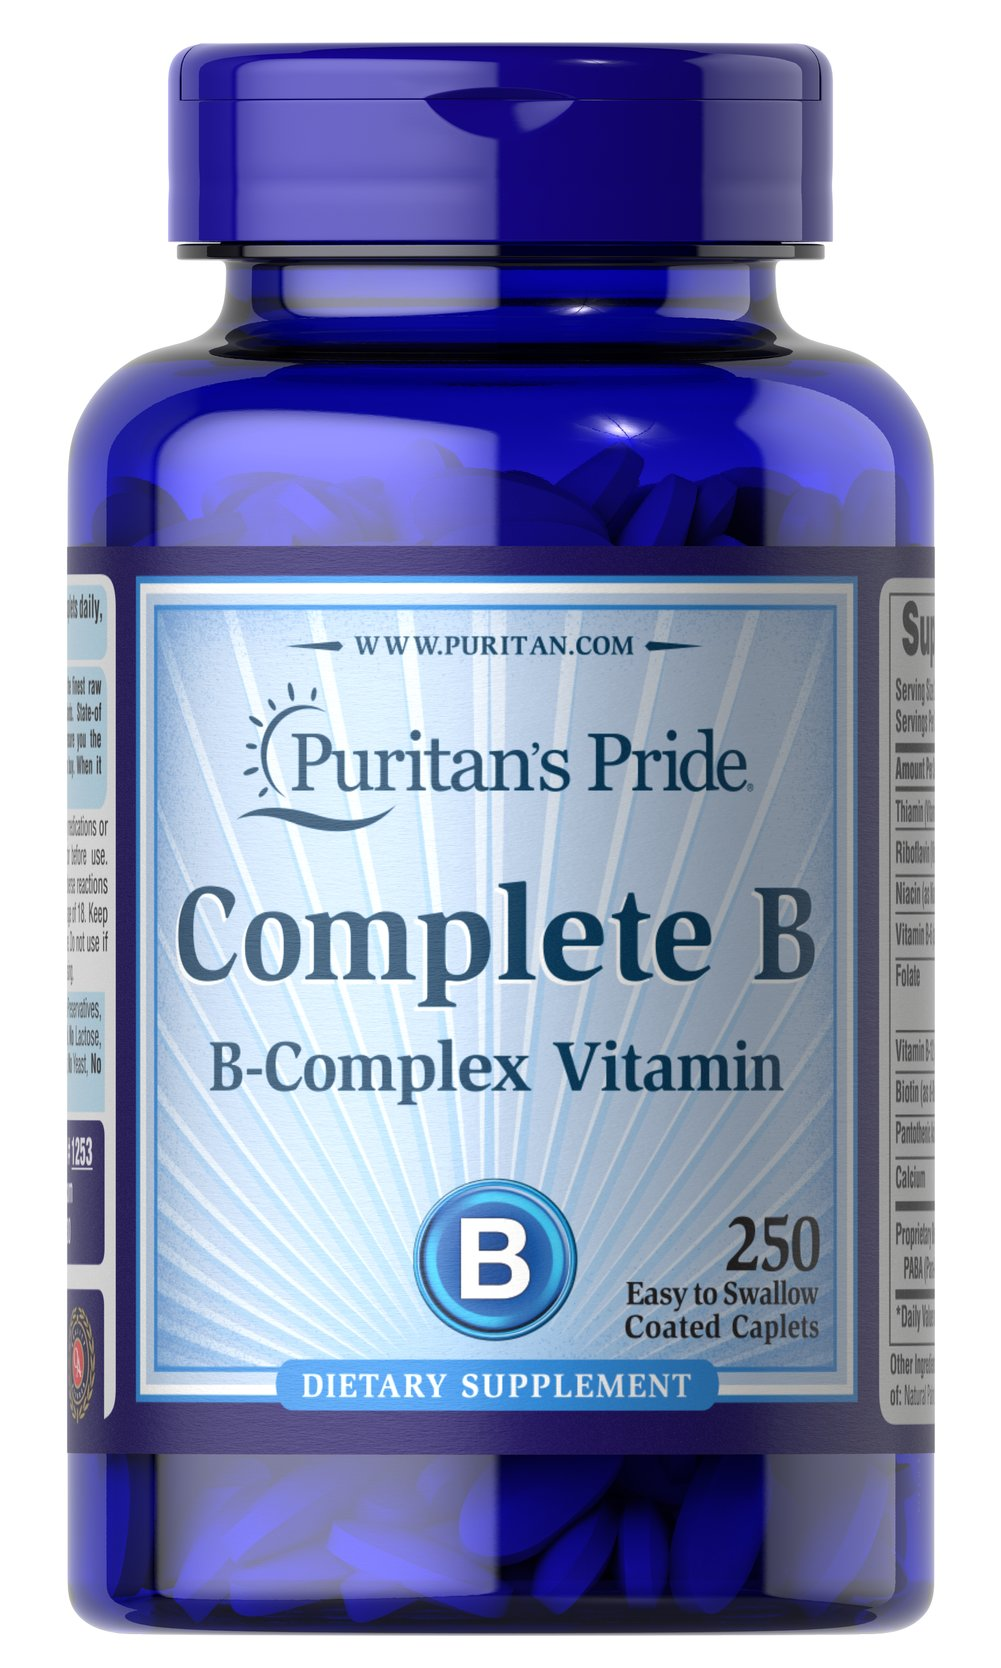 Complete B (Vitamin B Complex) <p>Complete Vitamin B Complex provides seven important B vitamins in just two caplets without sugar, starch, artificial colors or flavors. You get the entire B family in this sodium-free tablet the best B vitamin nutrition you can buy! Complete B can give you the peace of mind you deserve.</p> 250 Caplets  $27.99